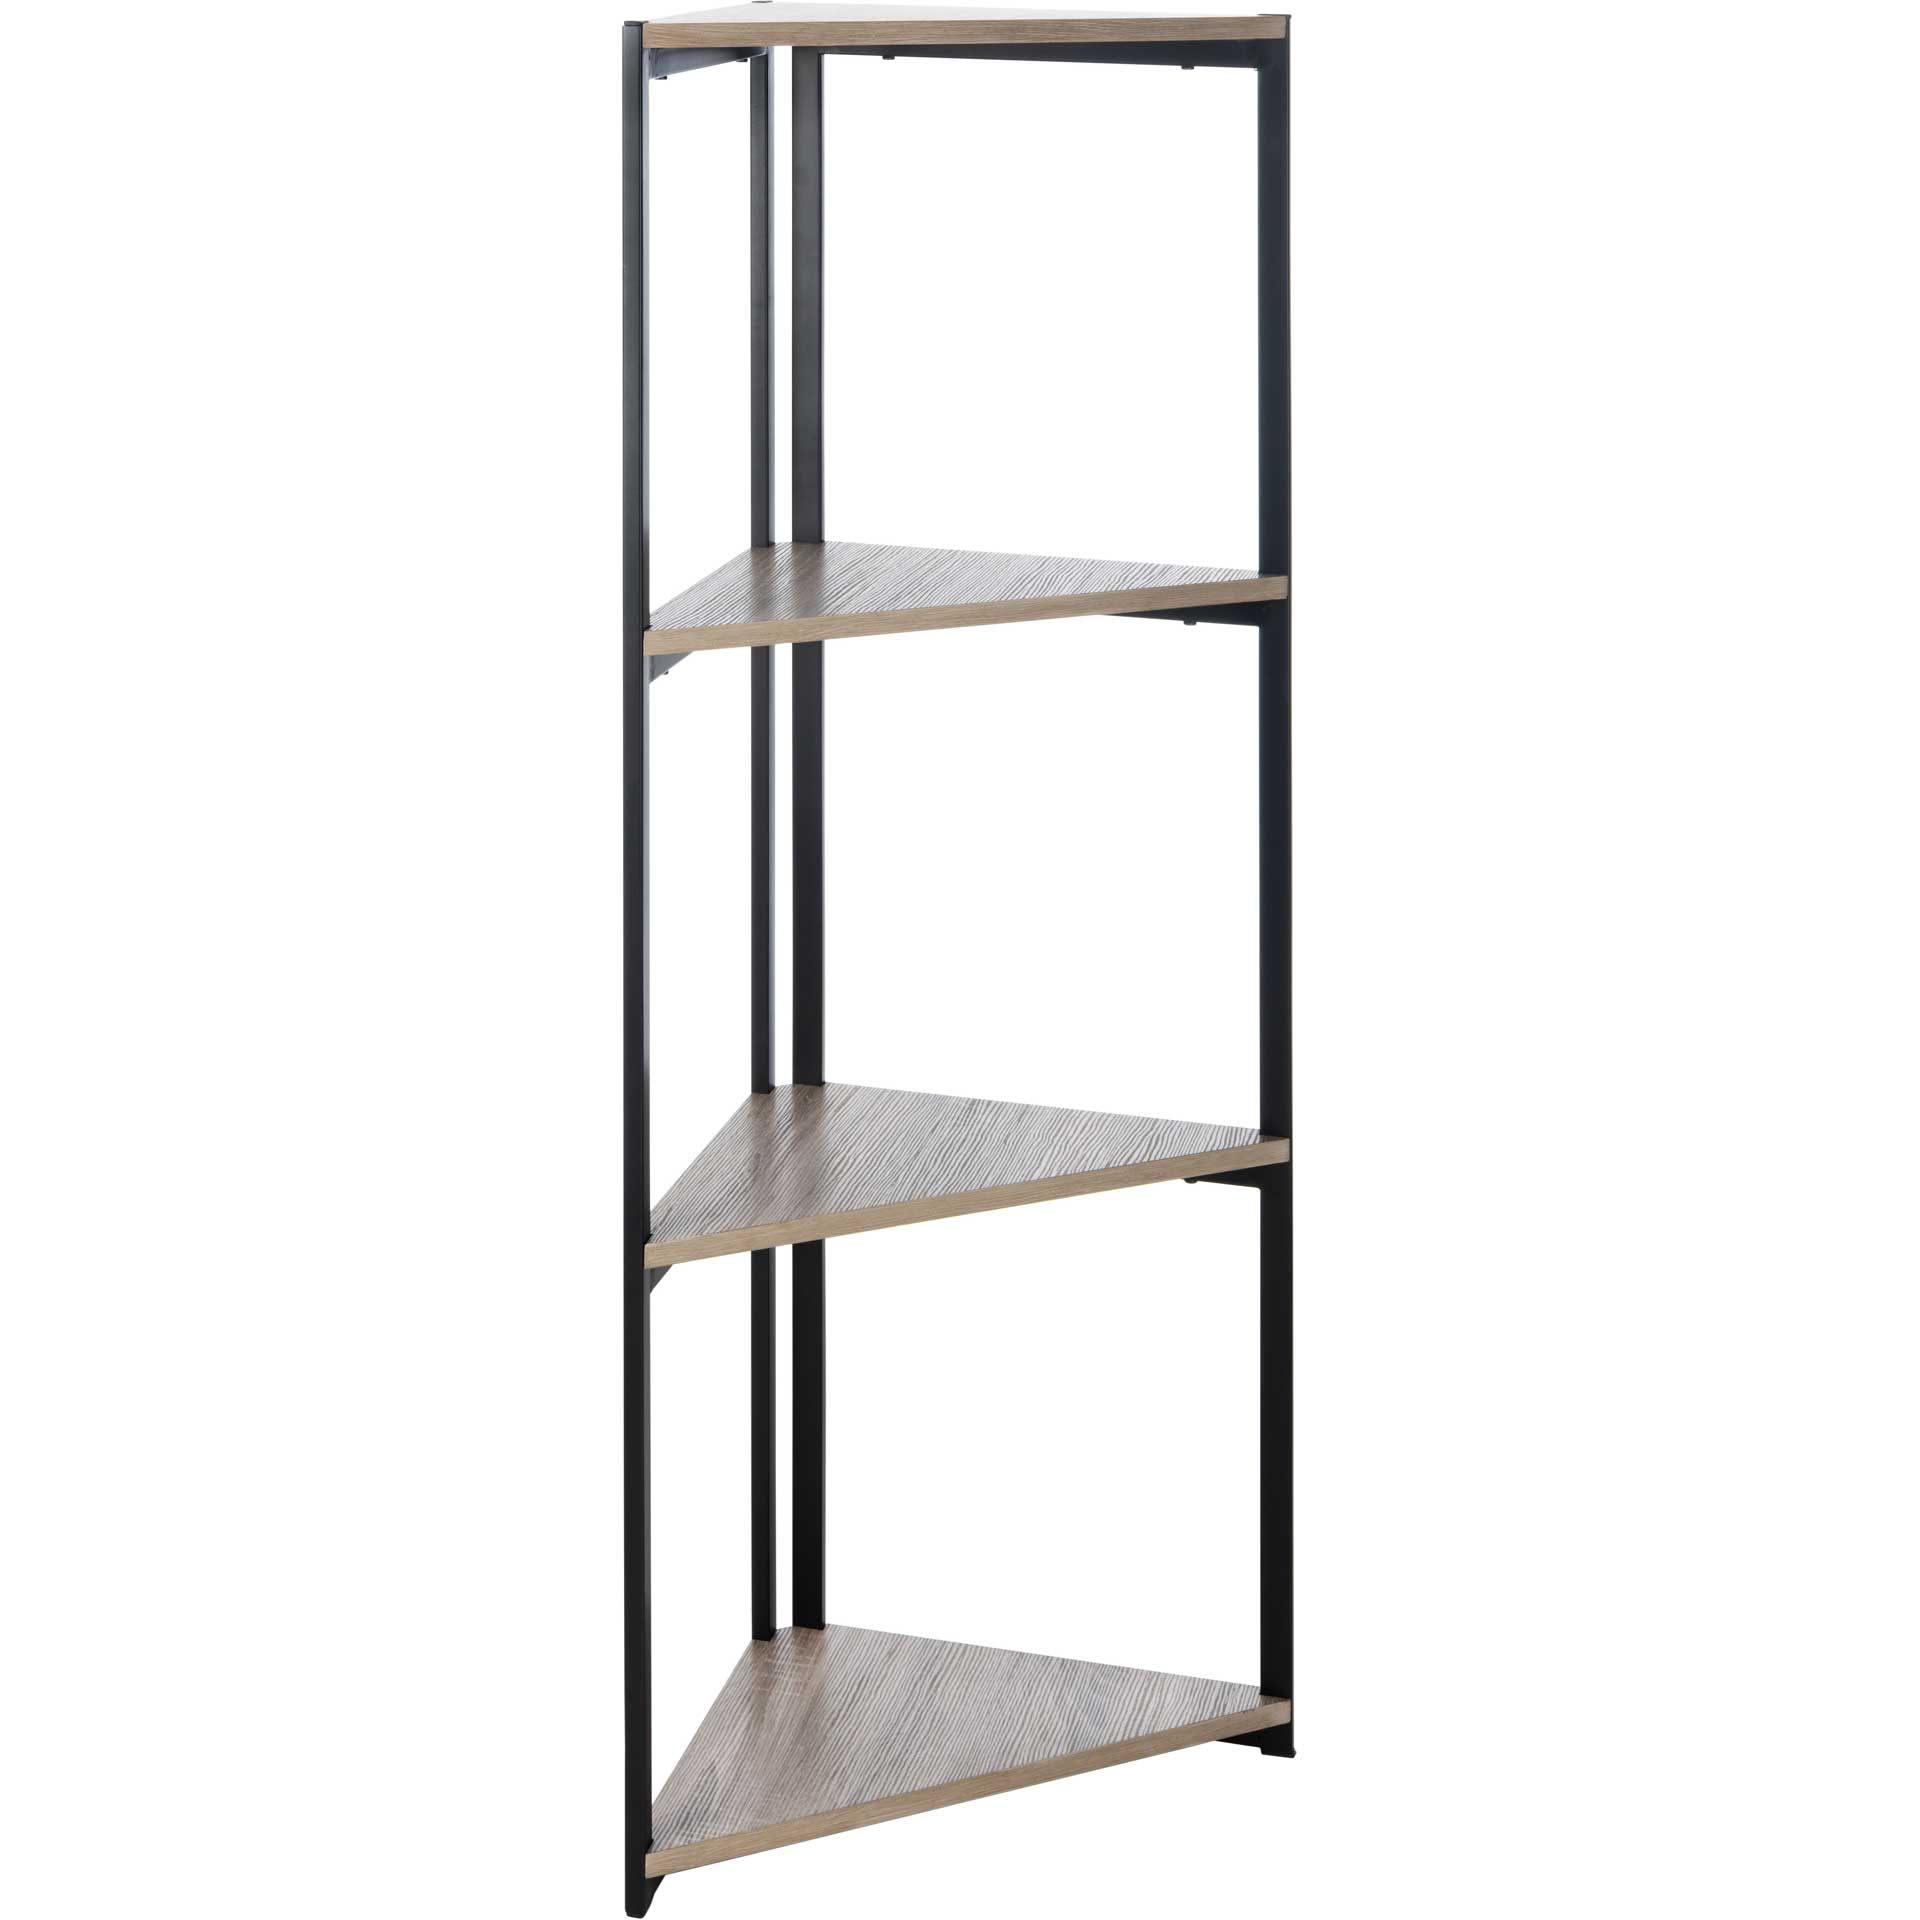 Lodge 4 Tier Corner Bookshelf Light Gray/Black